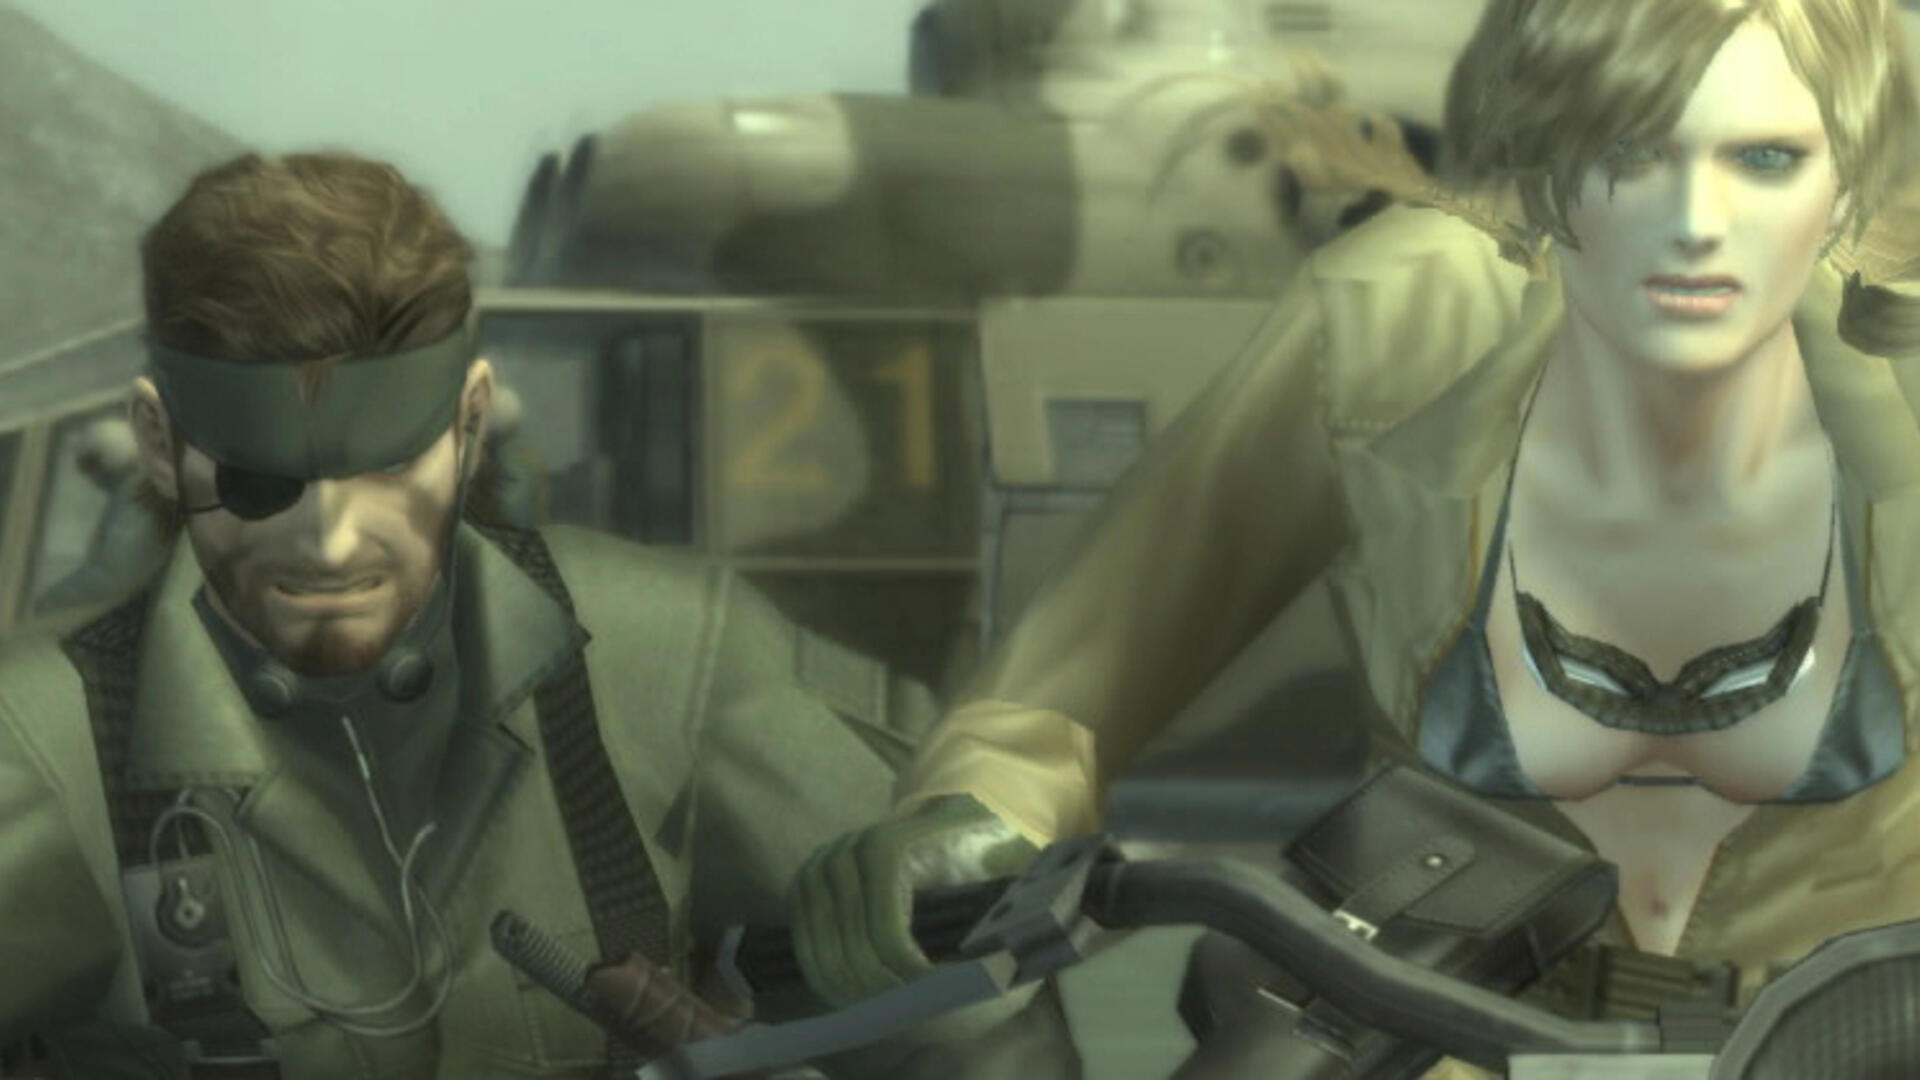 The 15 Best Games Since 2000, Number 2: Metal Gear Solid 3